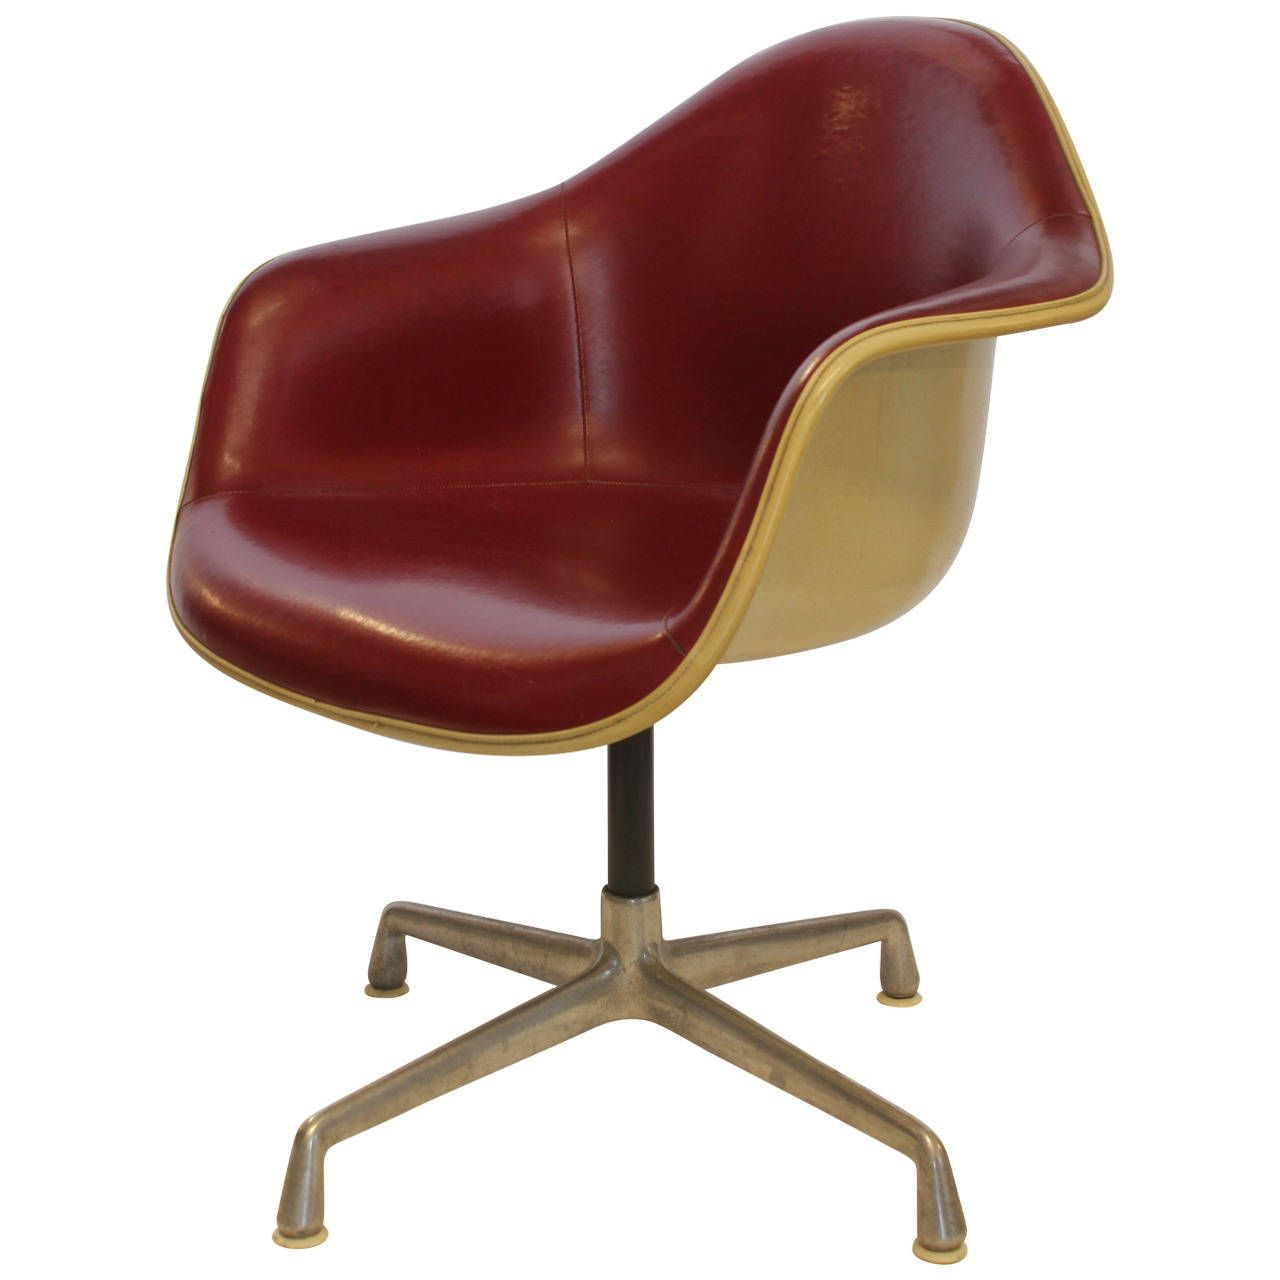 Charles Eames Swivel Bucket Chair For Herman Miller